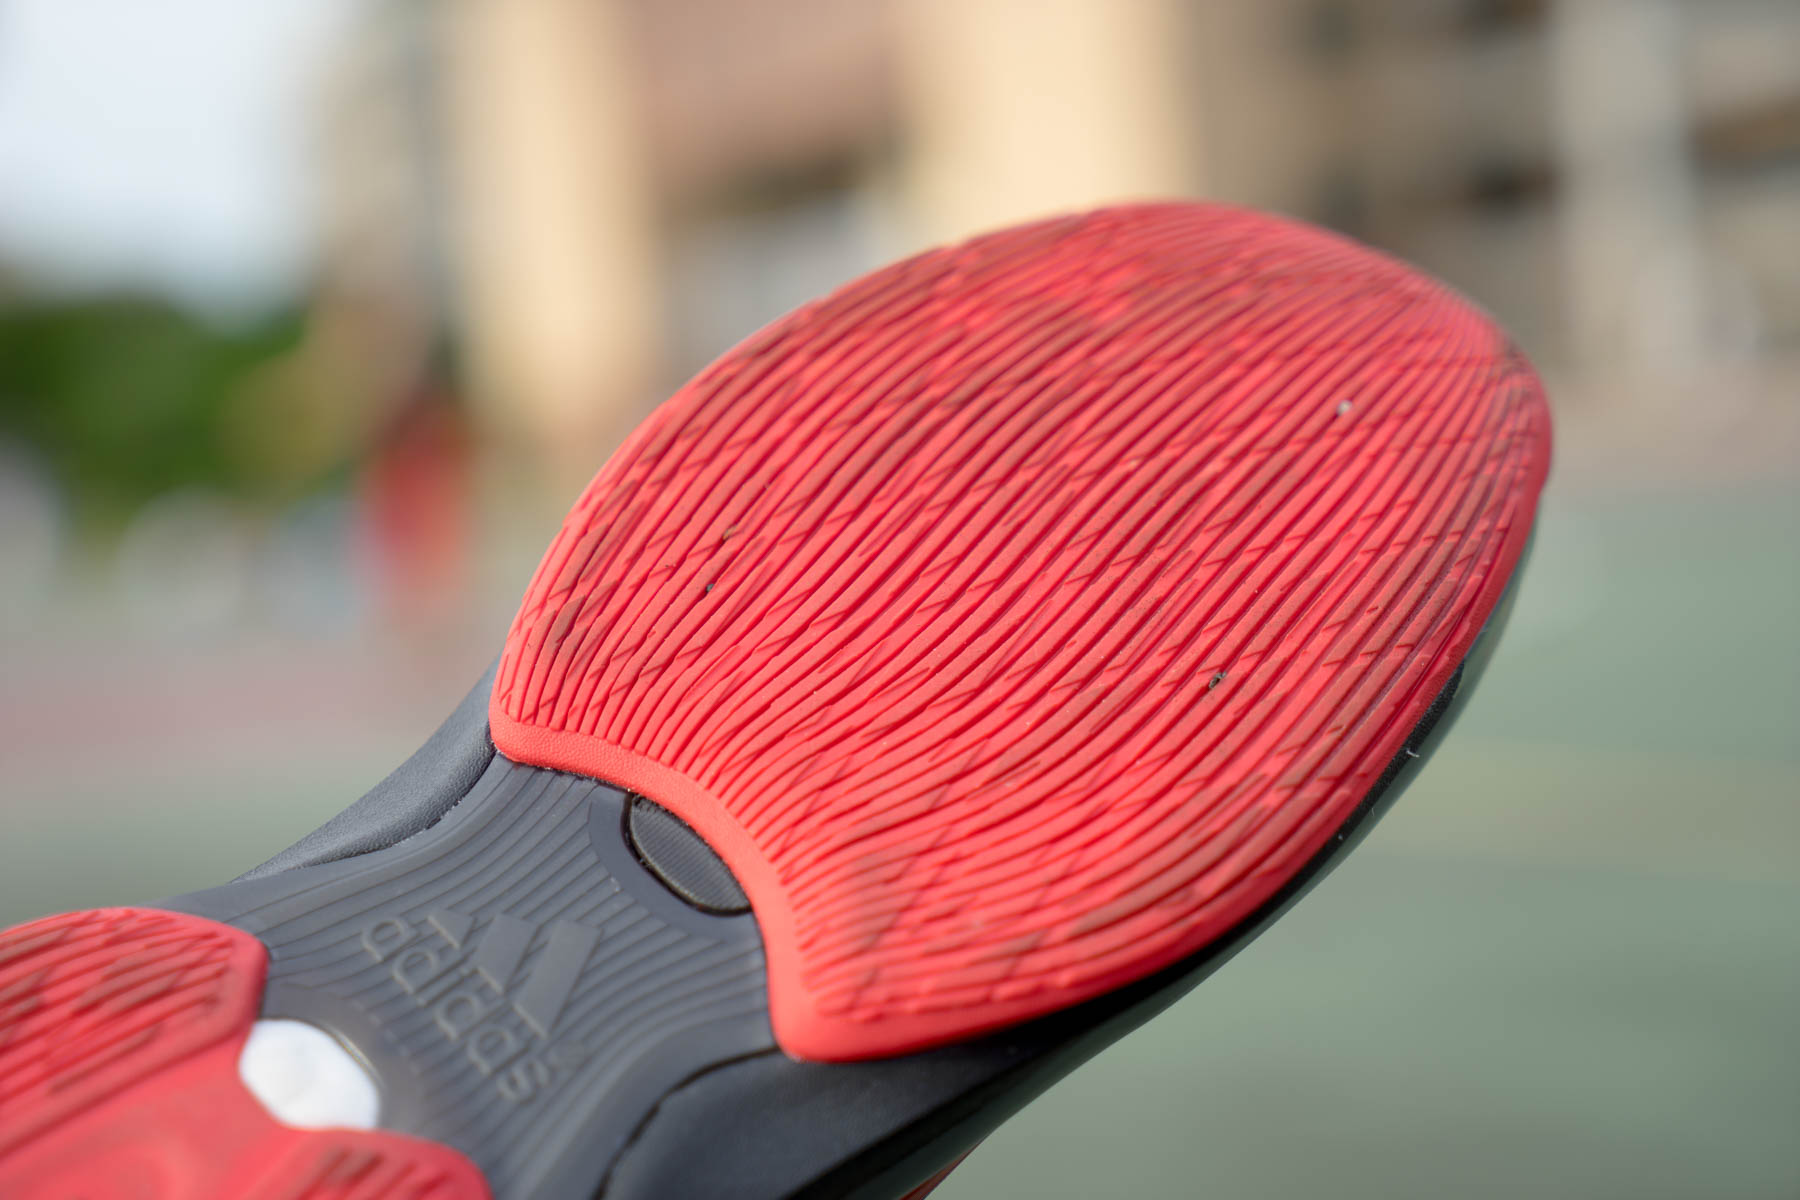 adidas-crazylight boost review-7